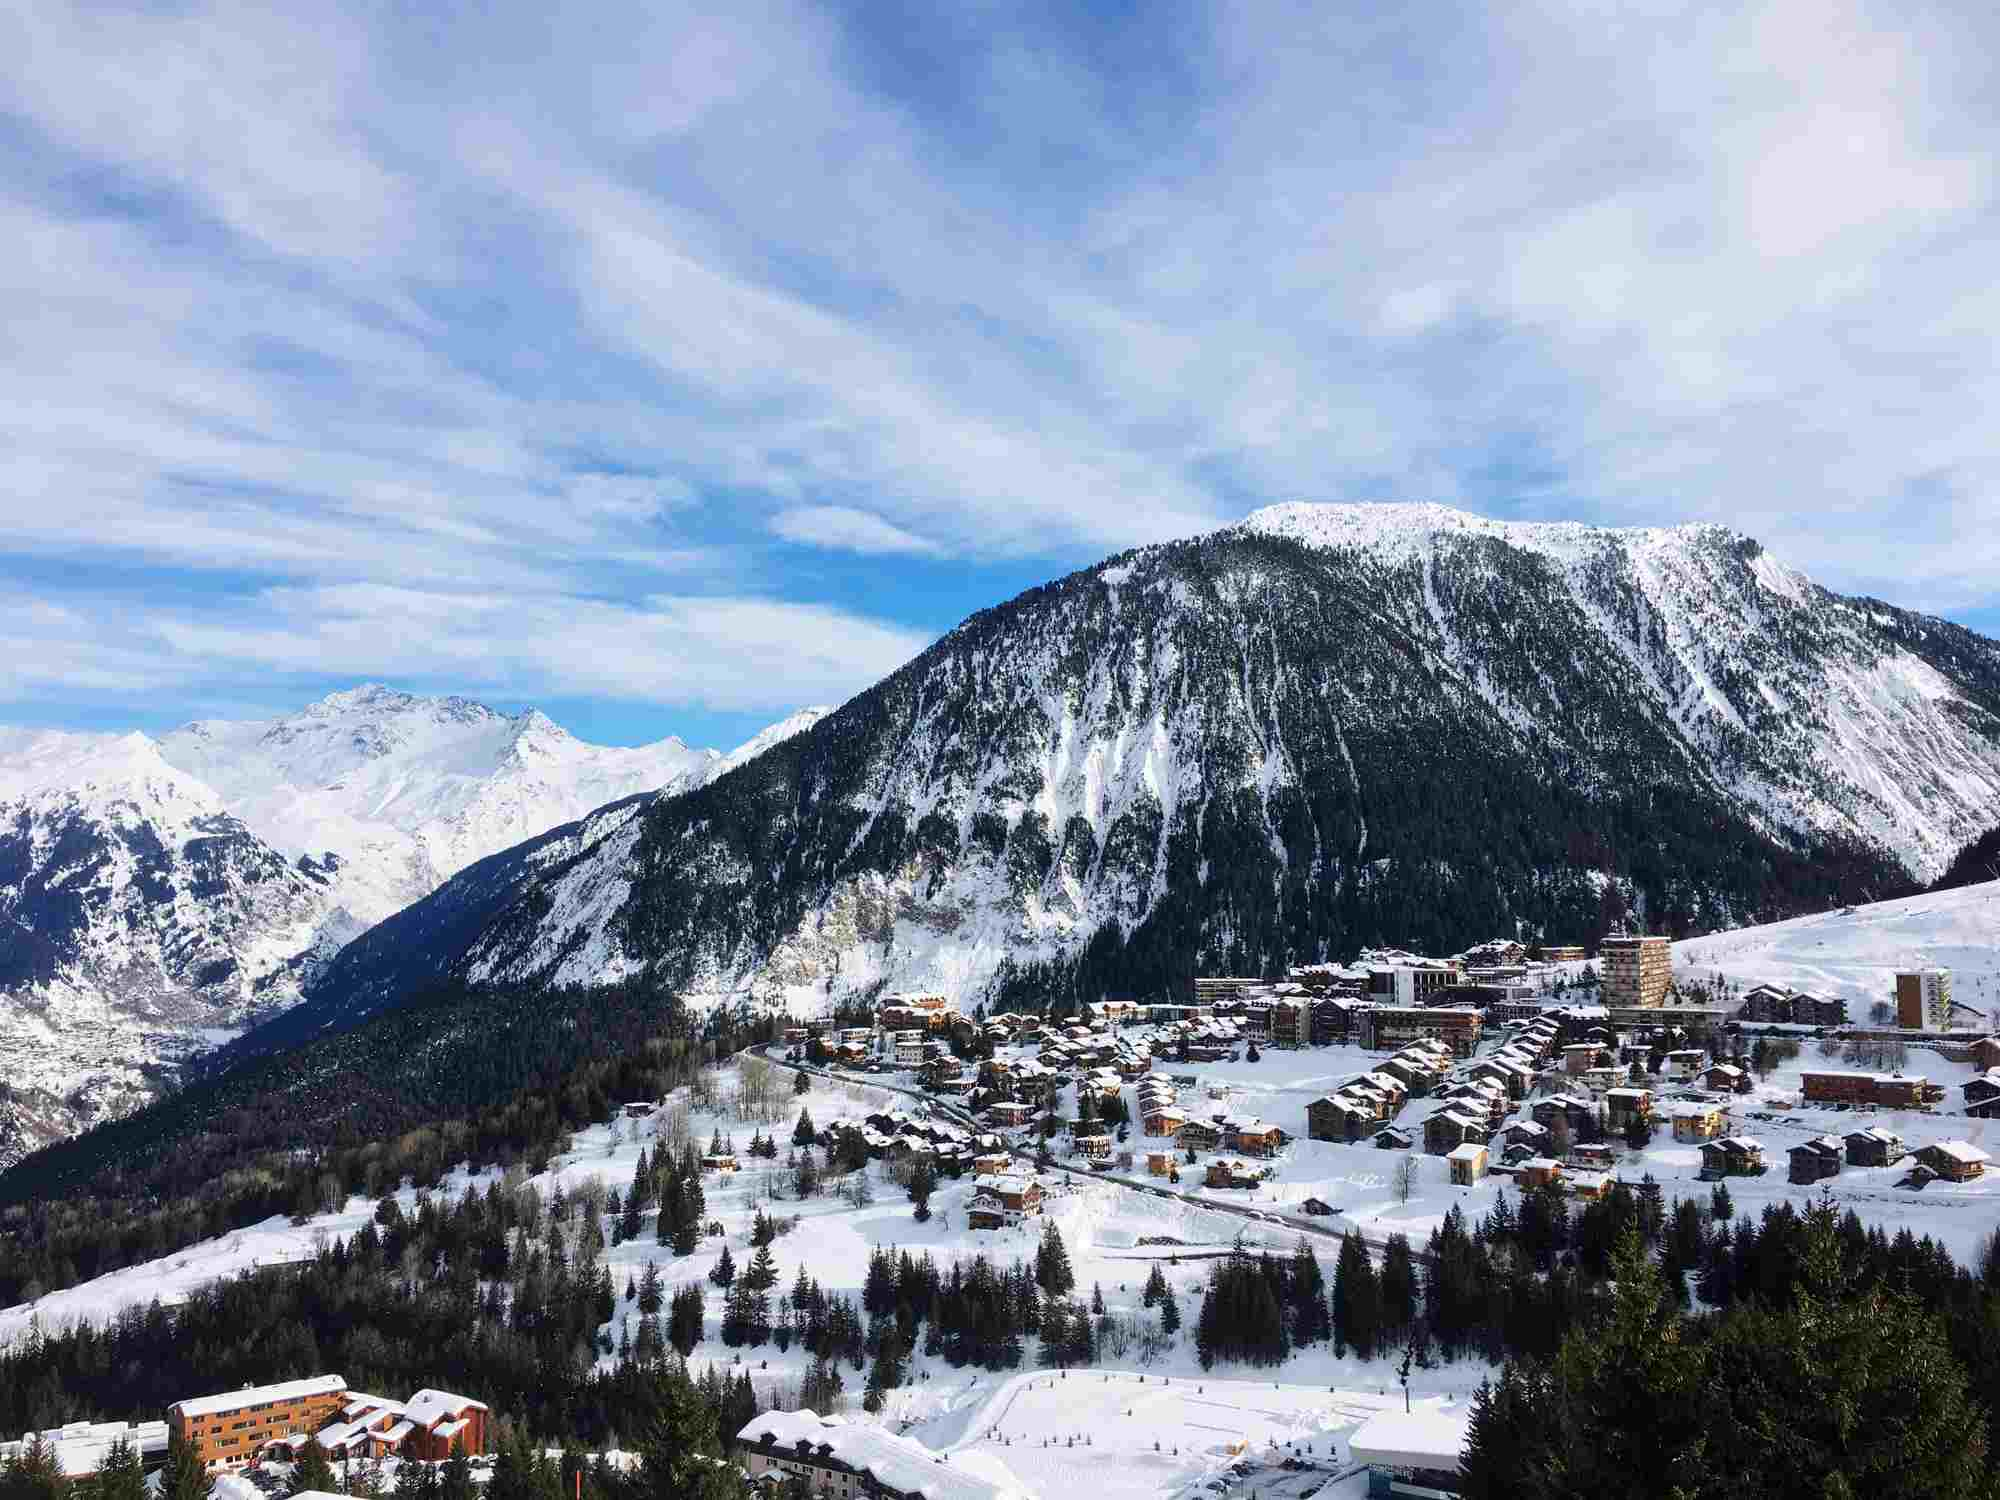 Scenic view of snowcapped mountains in Courchevel, France